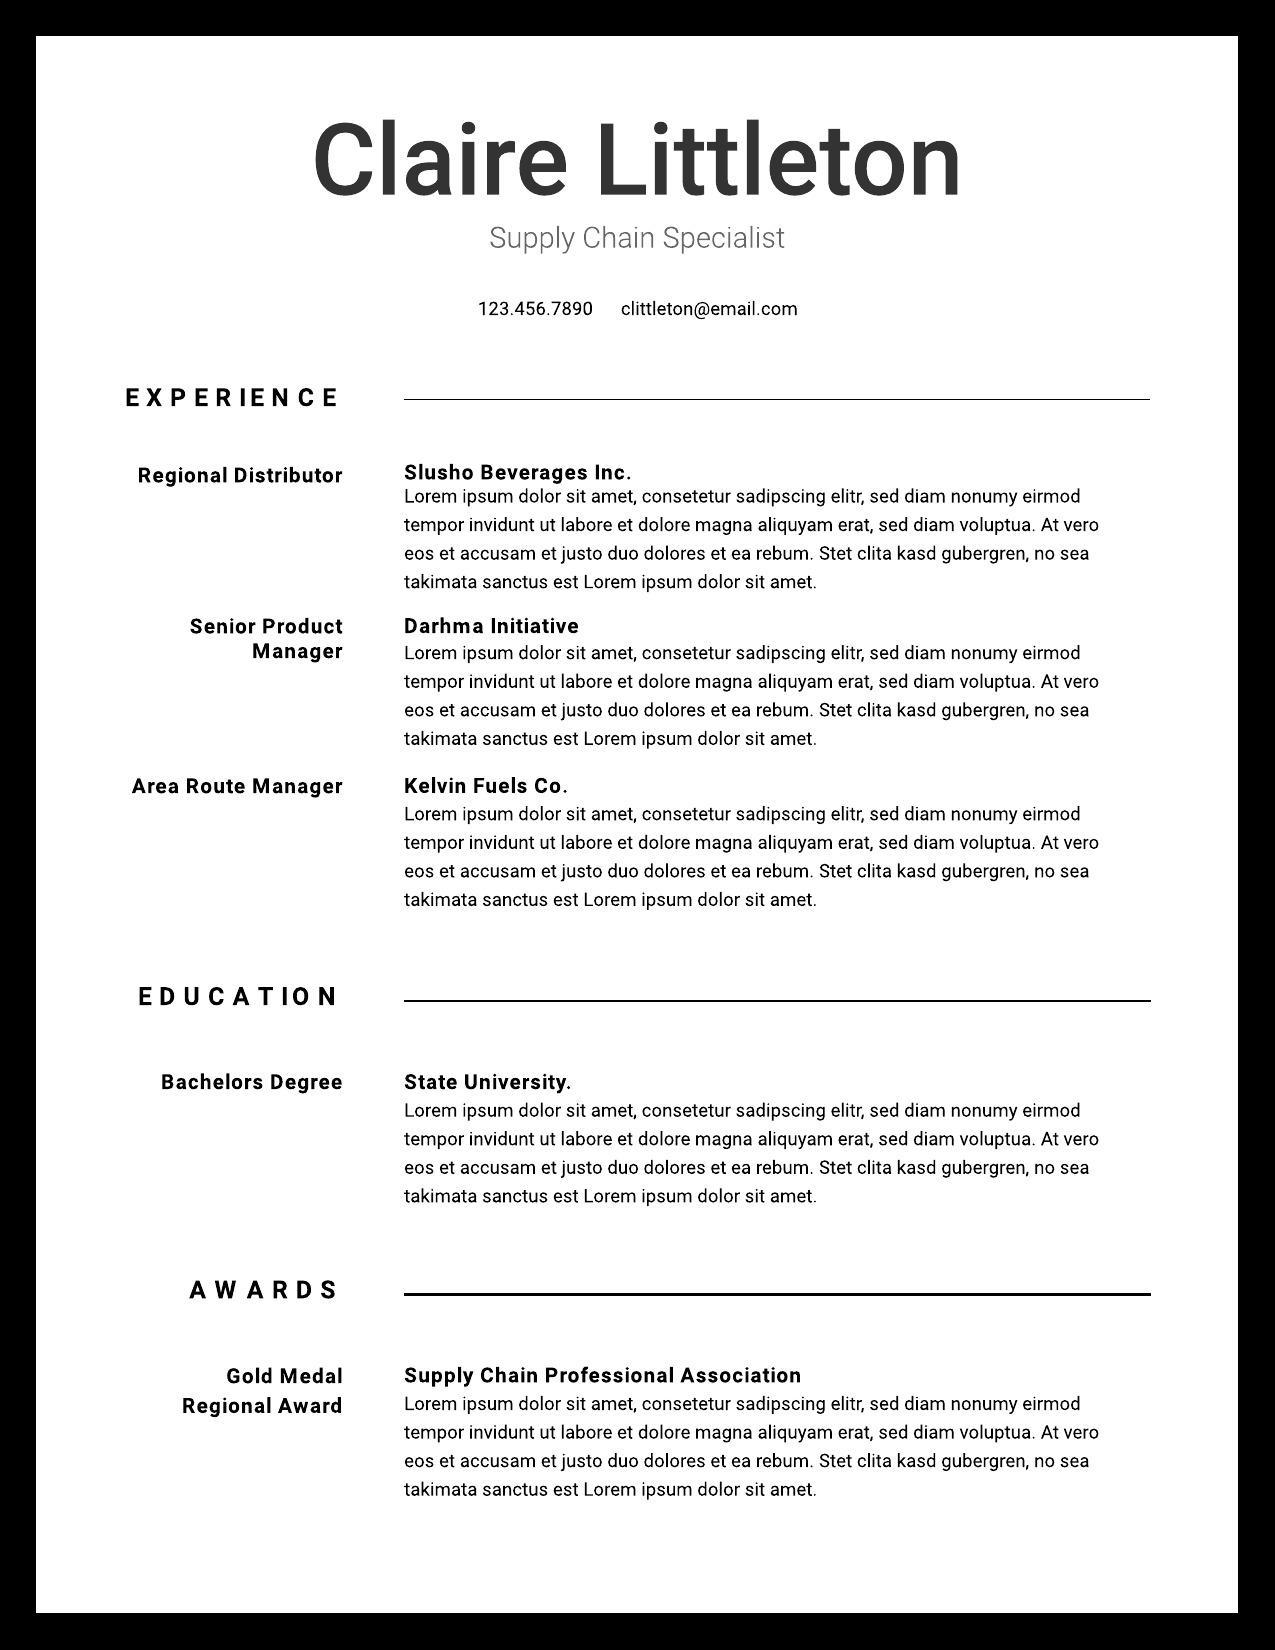 cv writing help advice to write your first with resume image09 new grad delivery driver Resume Advice With Resume Writing